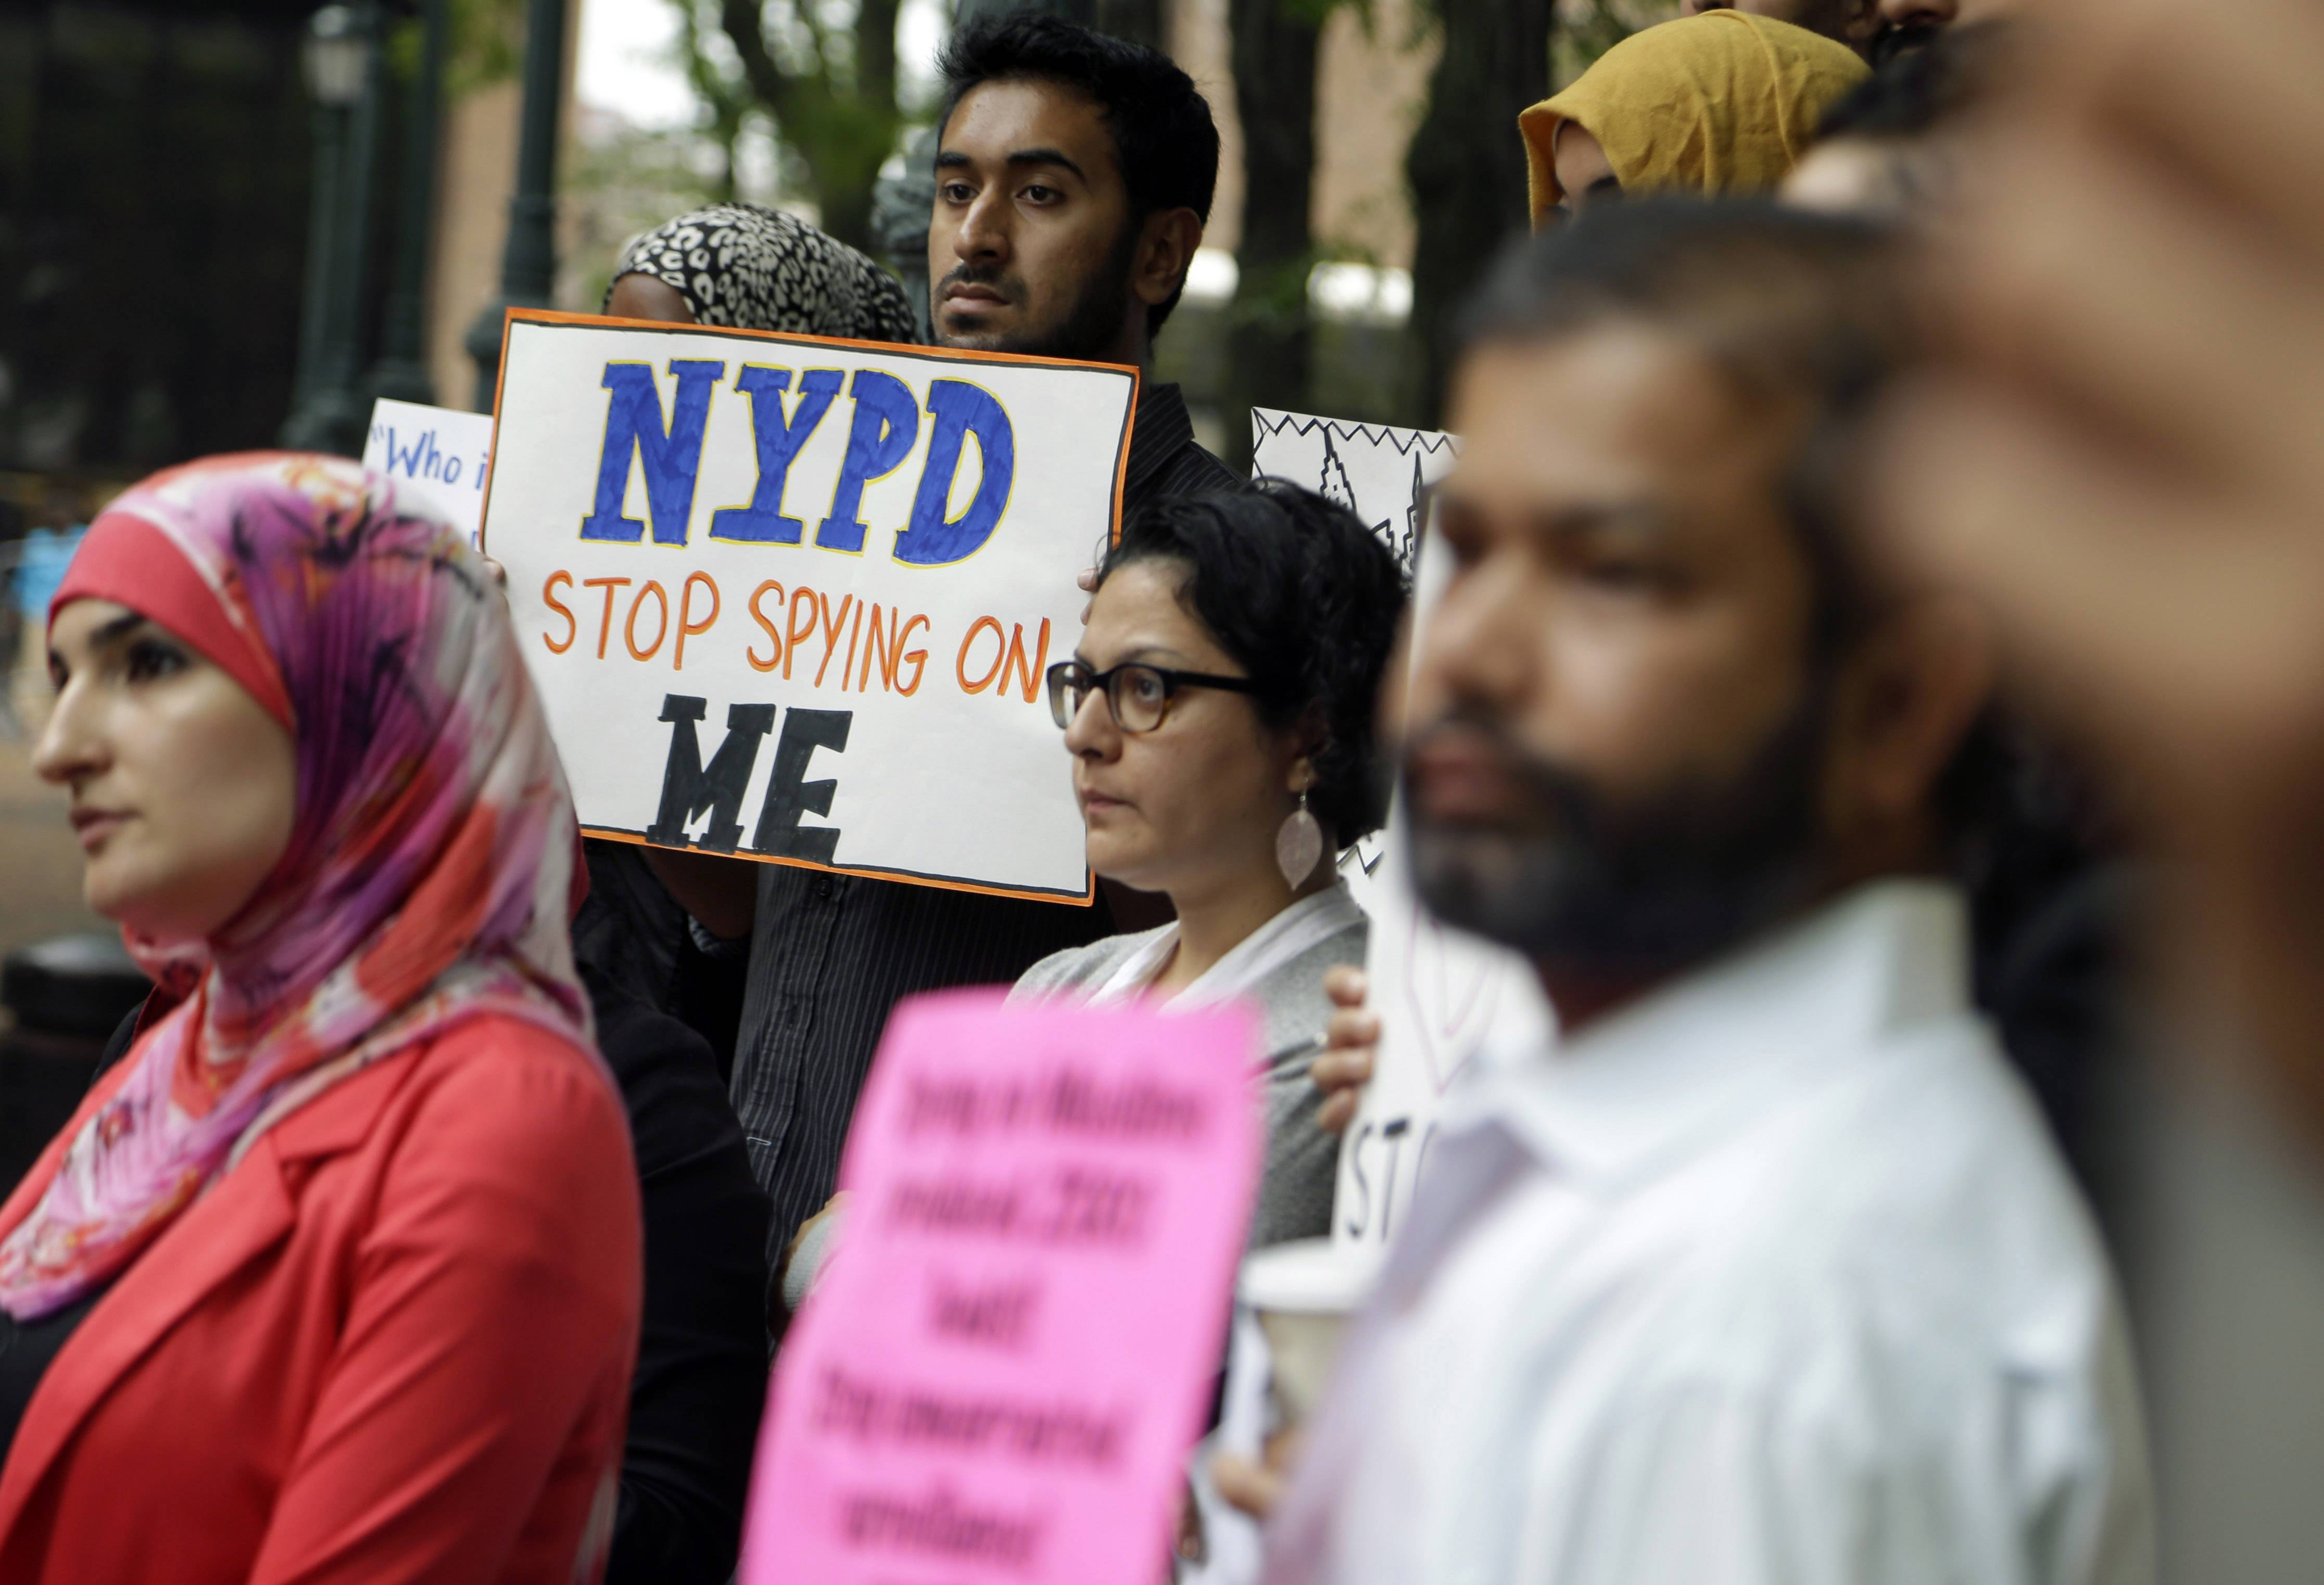 A group of people hold signs protesting the New York Police Department's program of infiltrating and informing on Muslim communities during a rally near police headquarters in New York. The NYPD confirmed Tuesday it disbanded the special intelligence unit that monitored Muslim communities in New York and New Jersey.